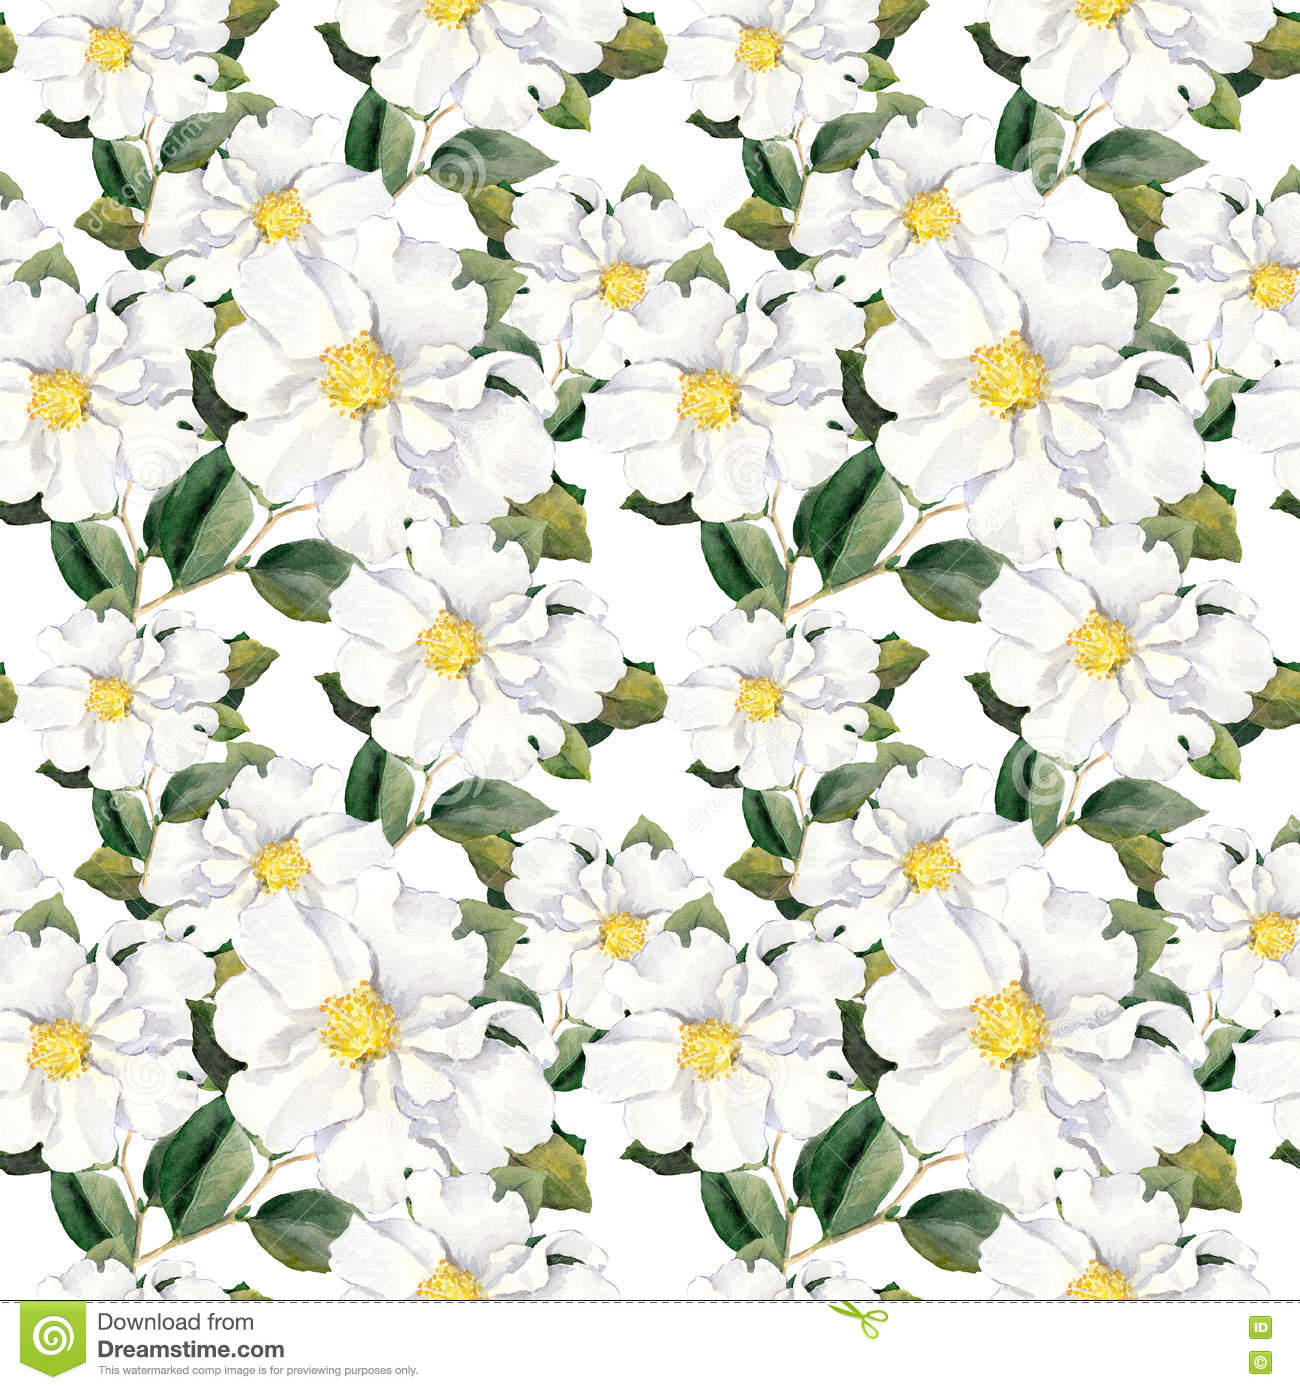 Seamless Floral Wallpaper With White Flowers Magnolia Peonies